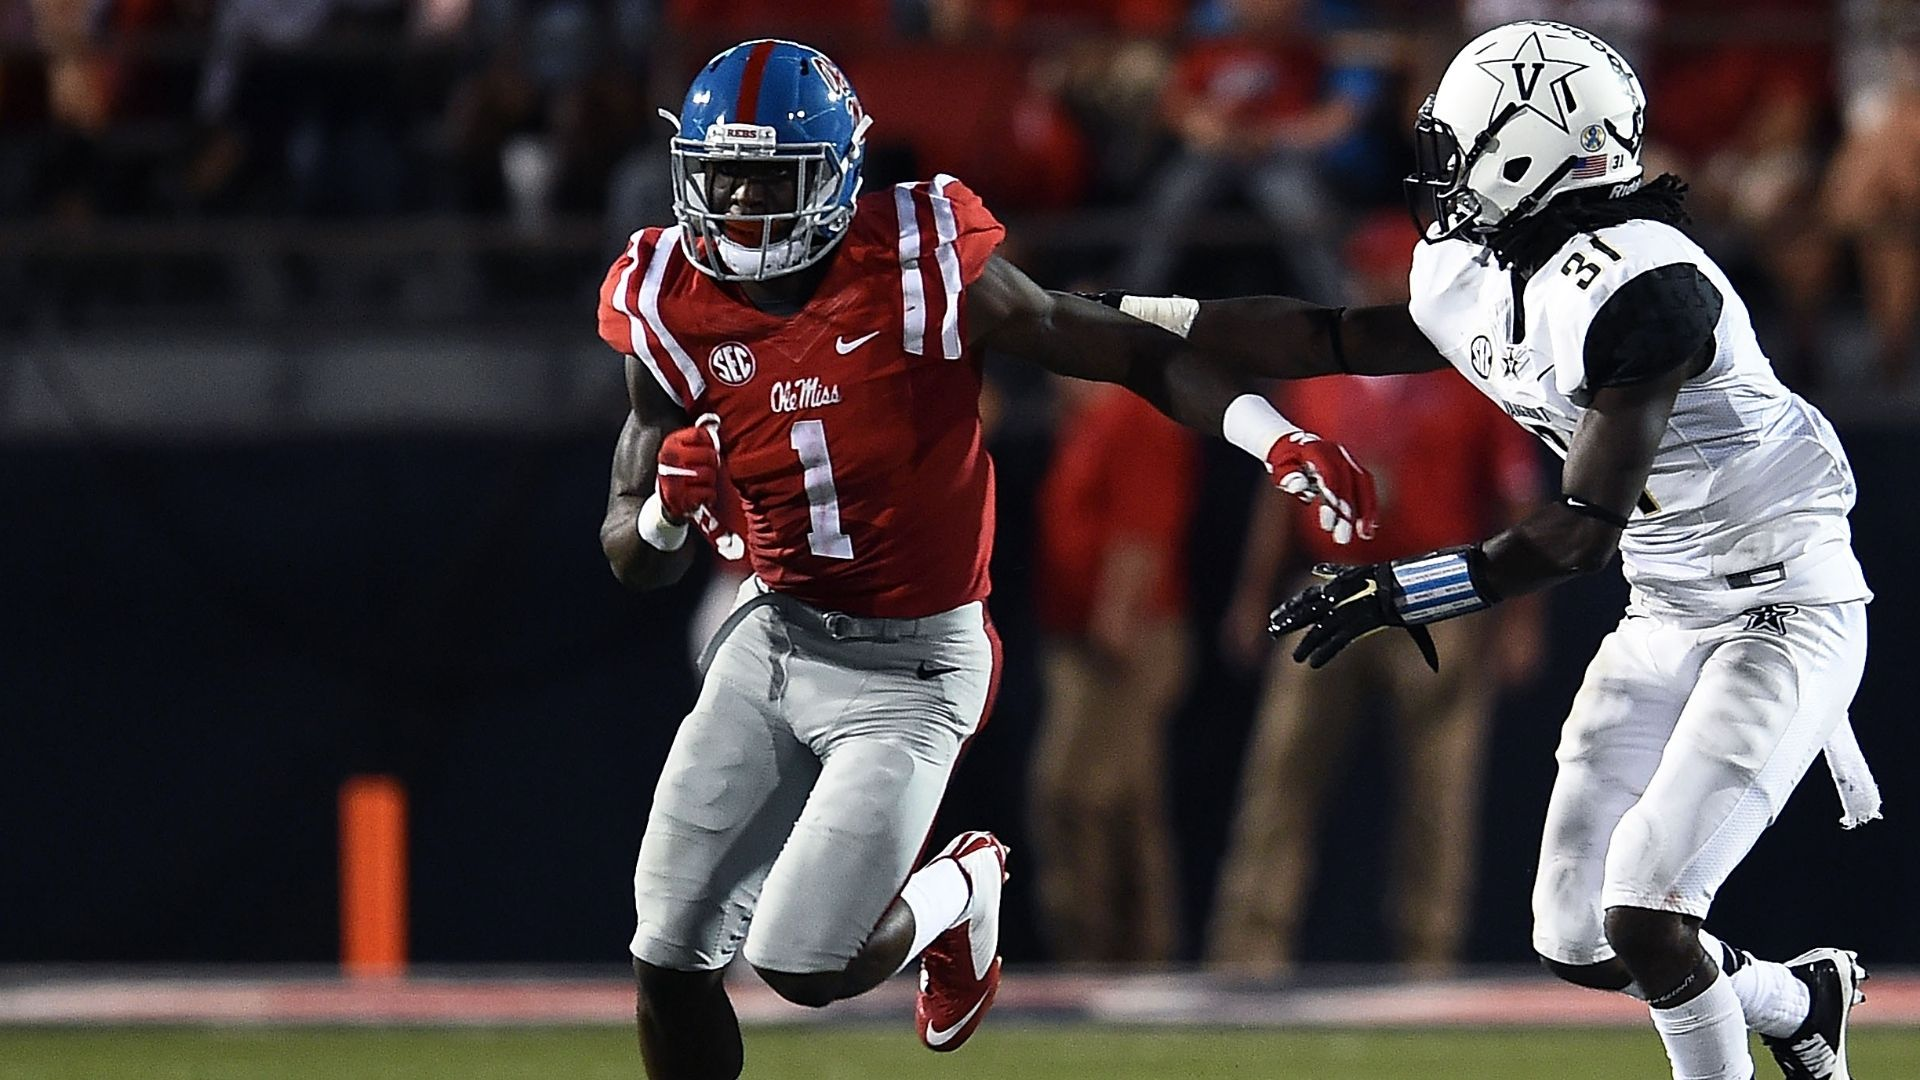 McShay: Treadwell will be possession receiver in the NFL